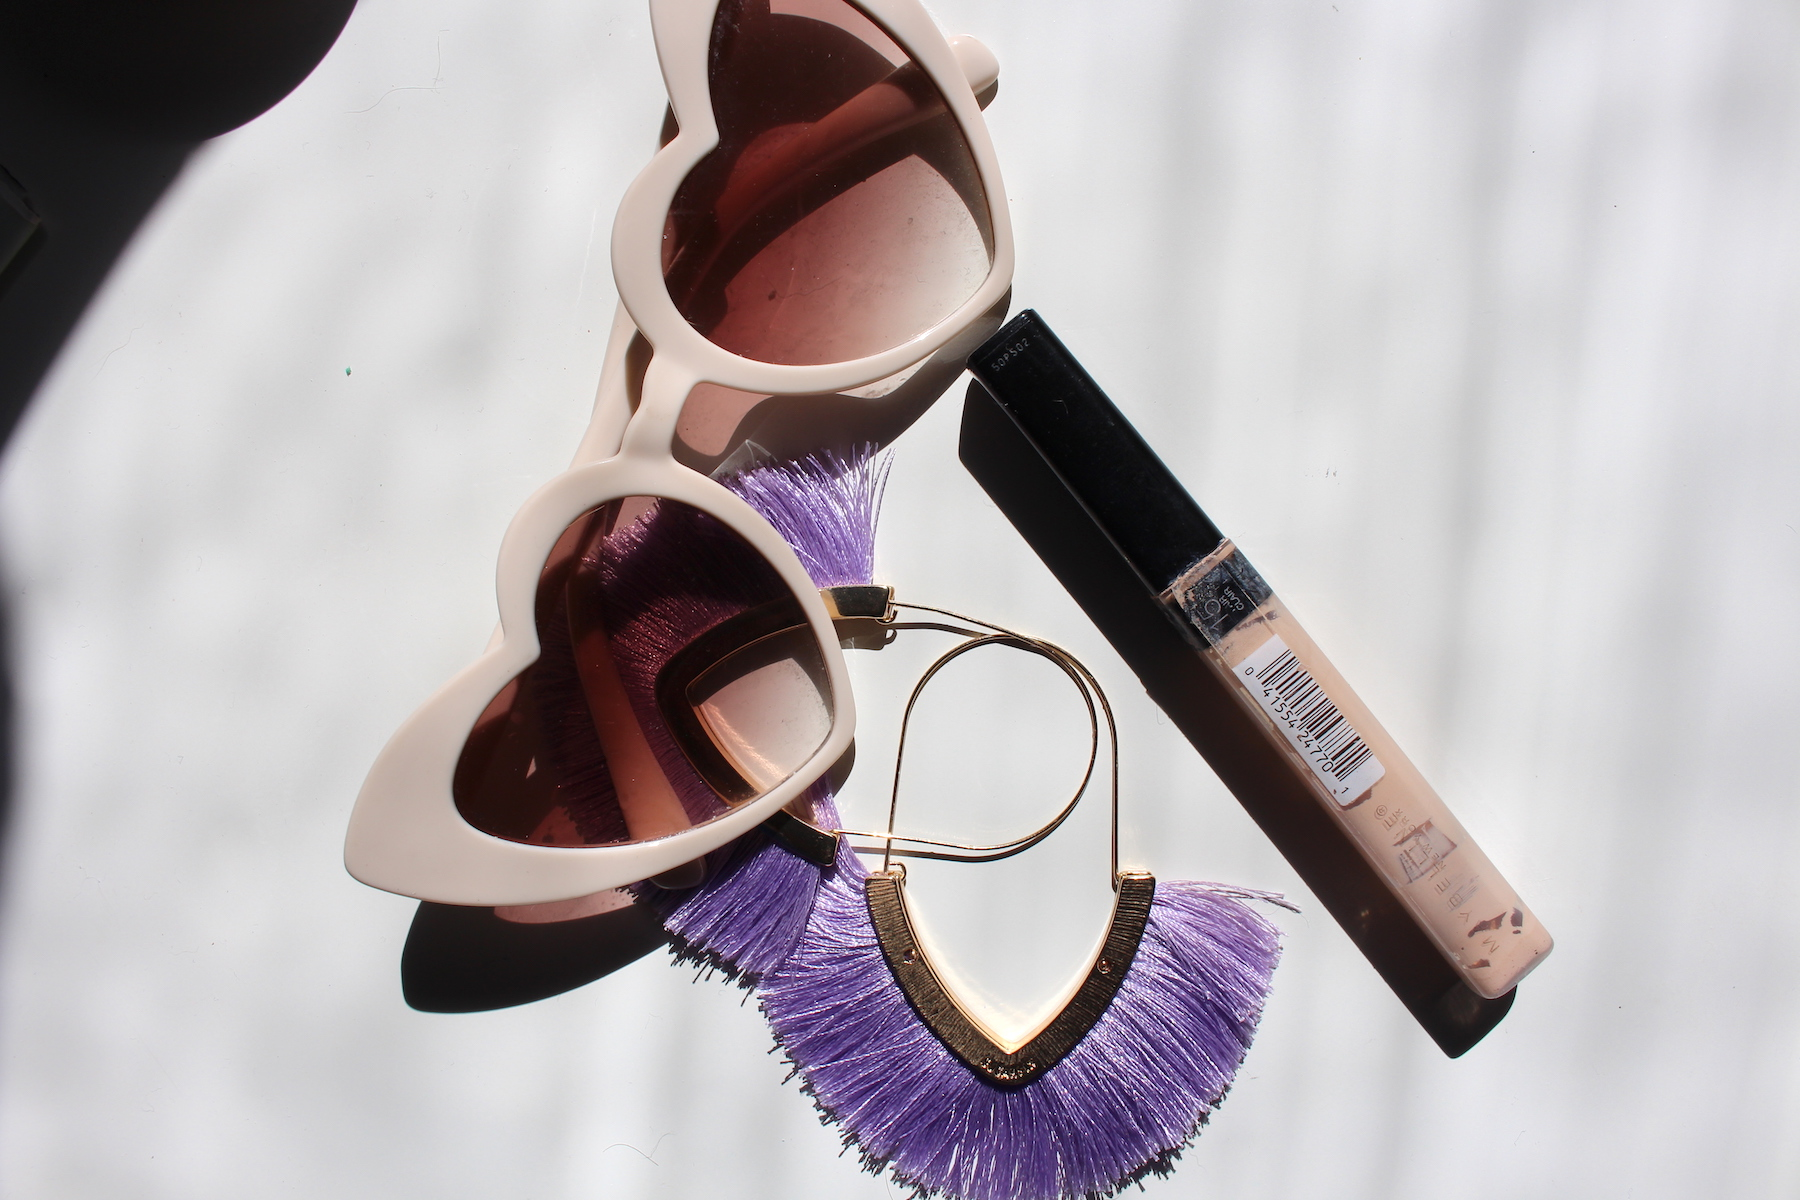 Beauty products I'll repurchase and ones I won't